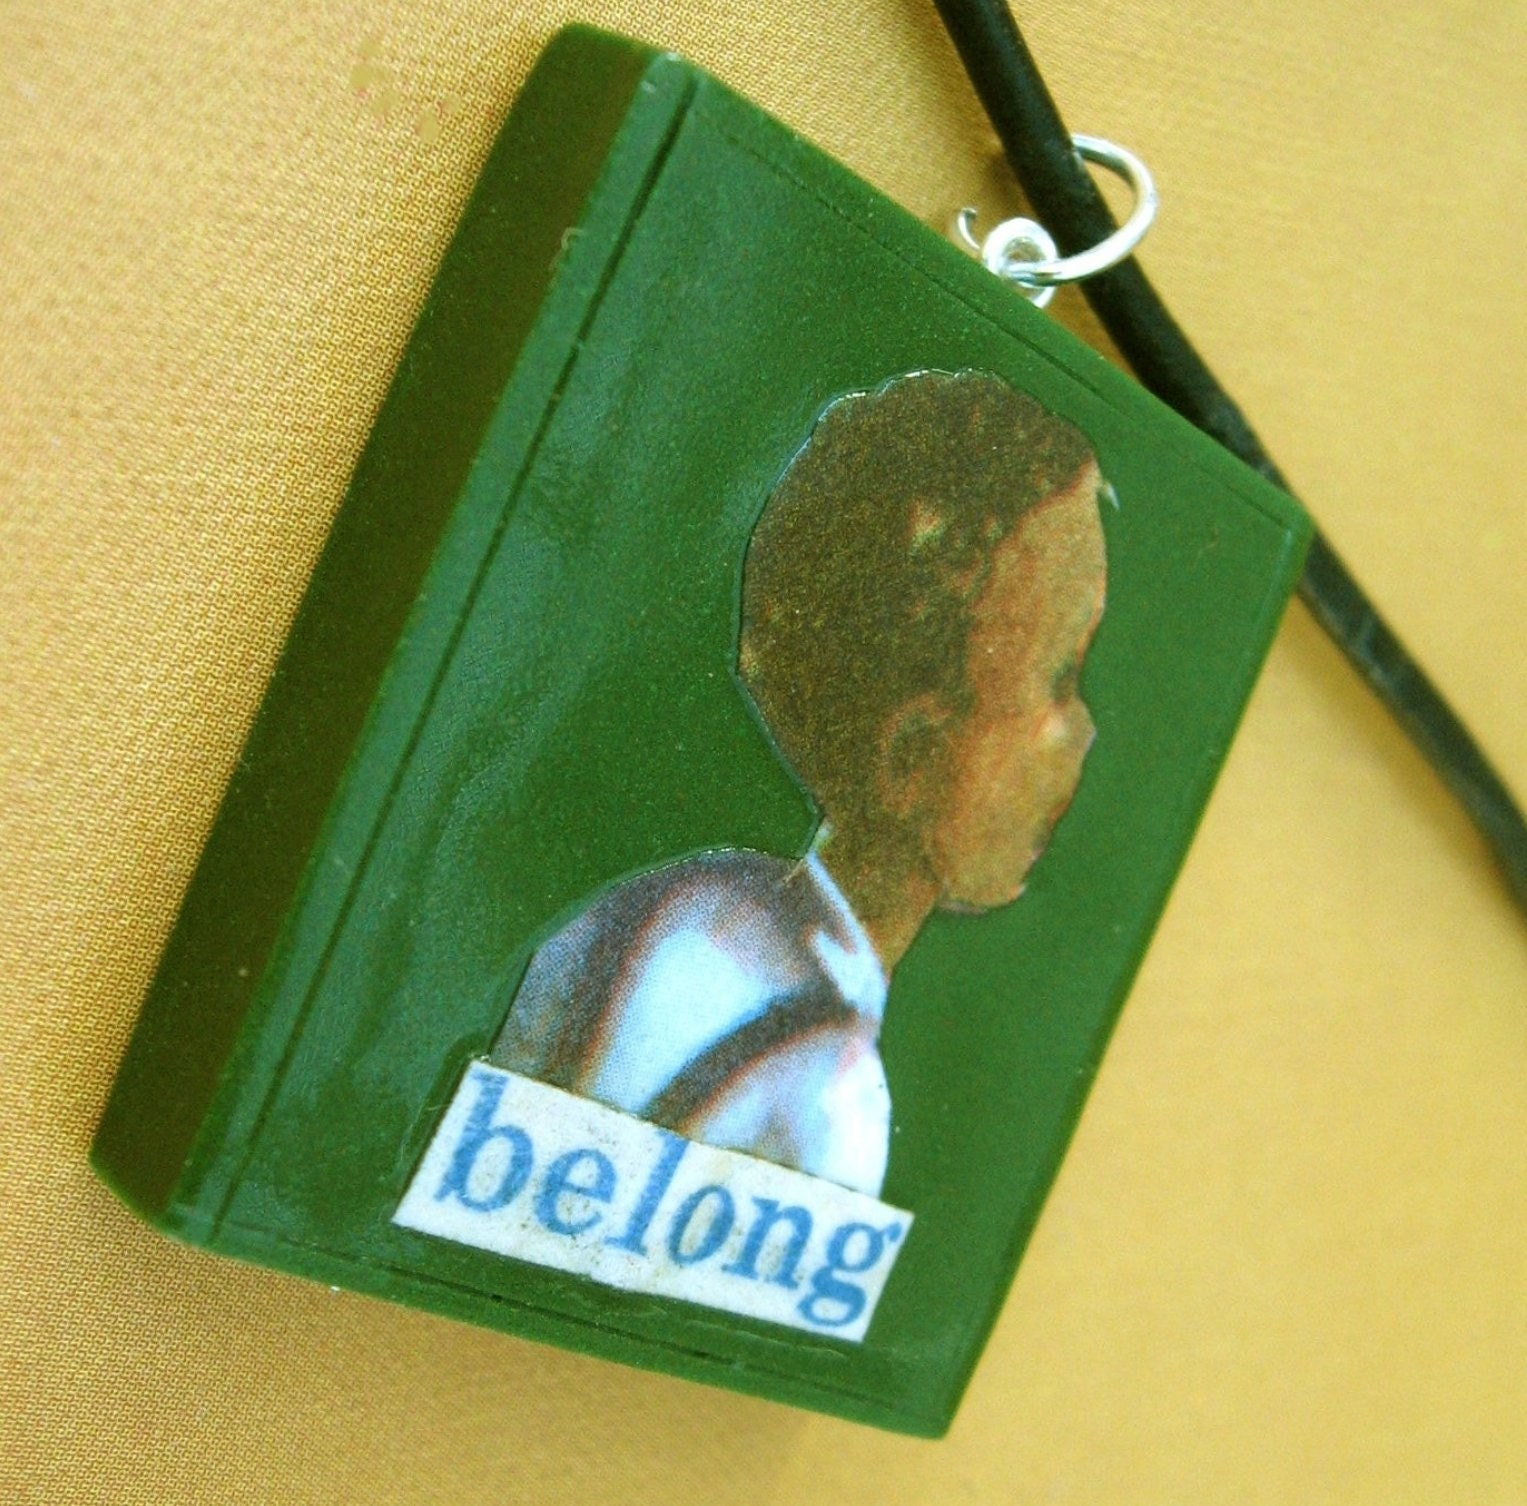 Belong pendant (on leather cord)